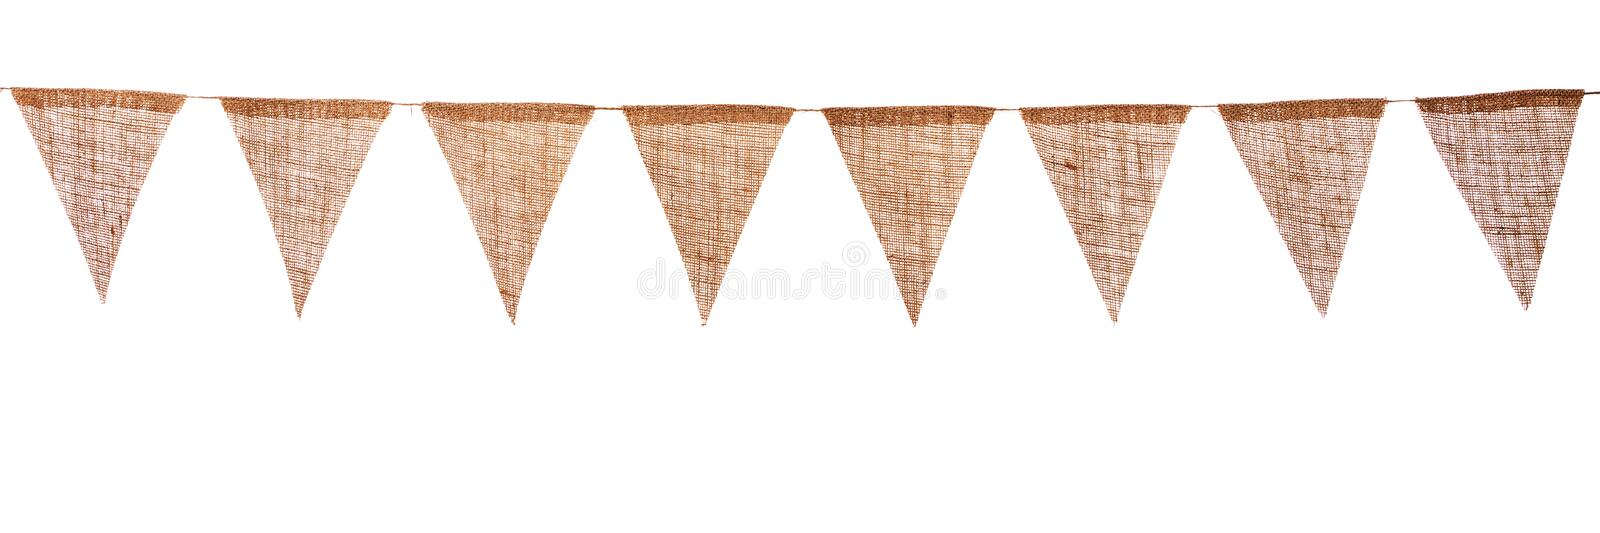 Garland with pennants. Garland with burlap pennants, isolated in front of white royalty free stock photos